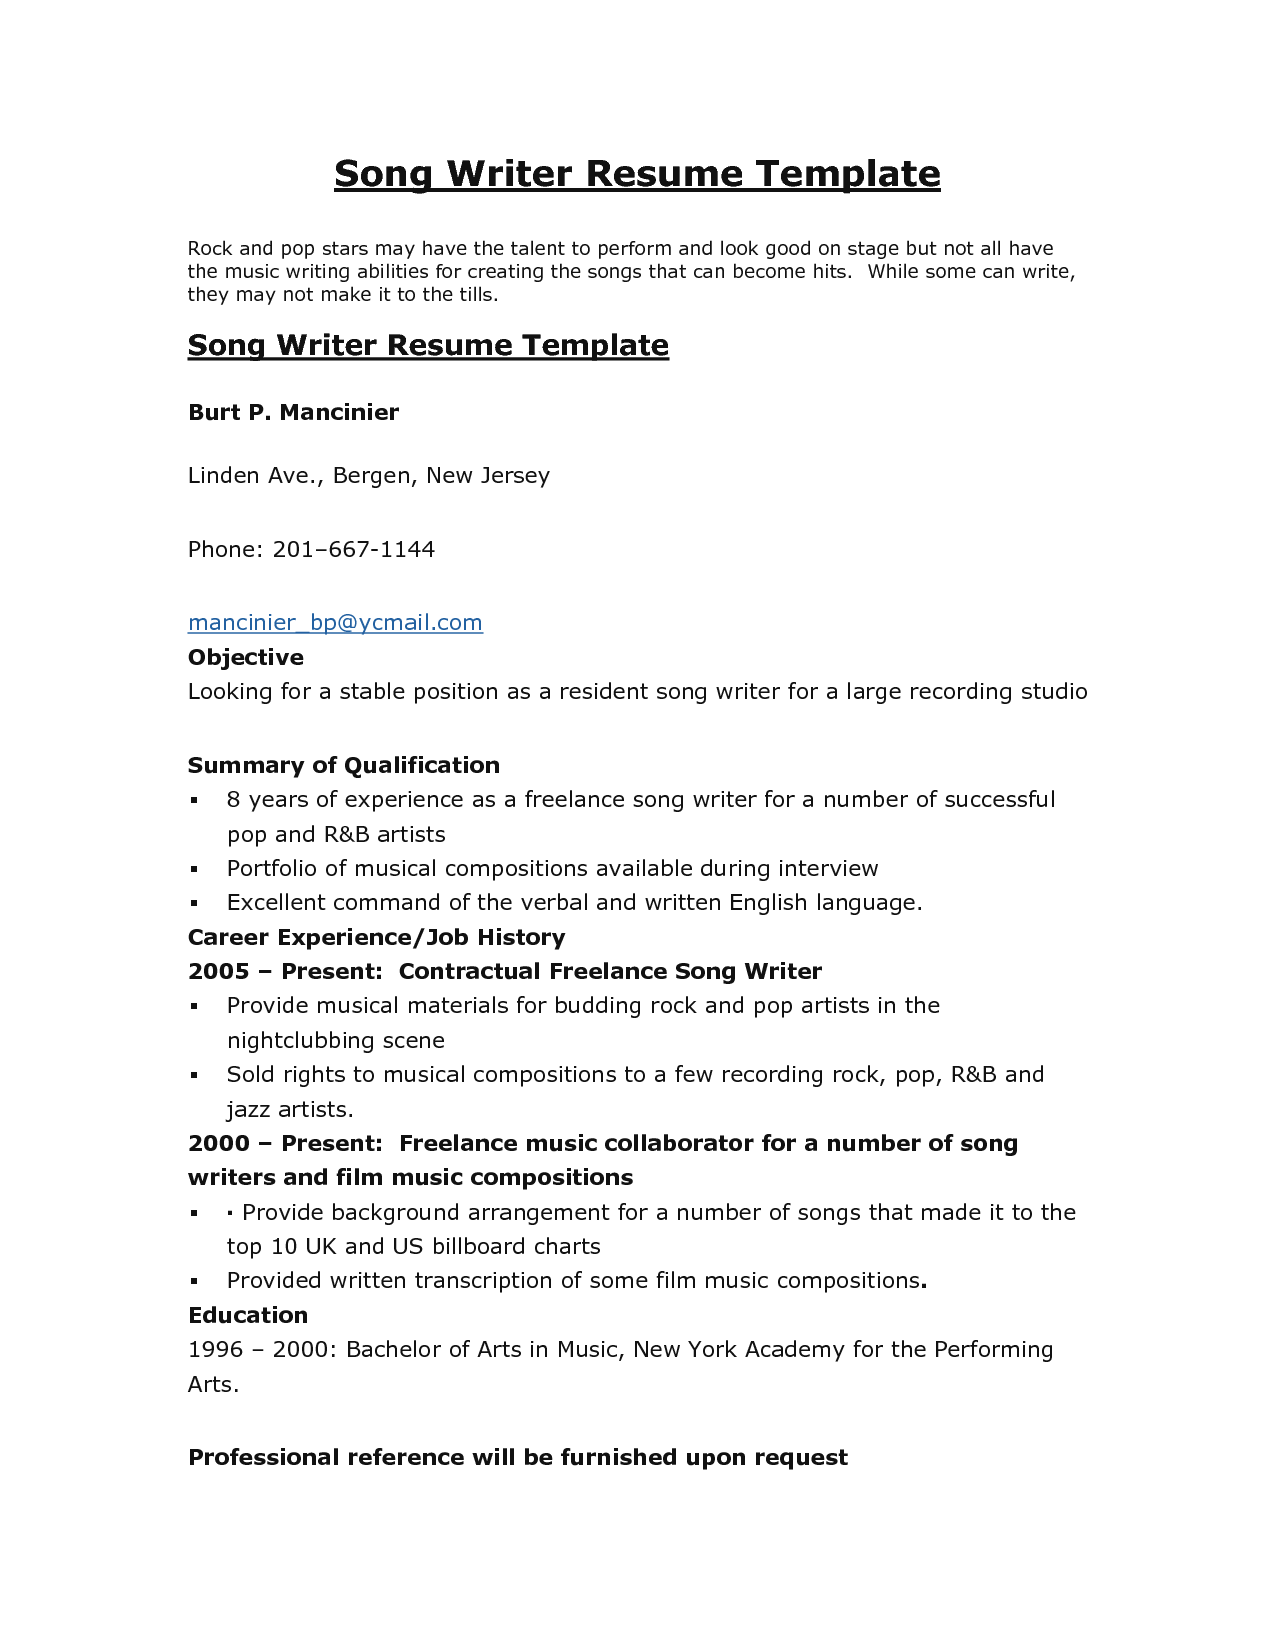 Resume Examples Free Writing Templates Format Samples Song Burt